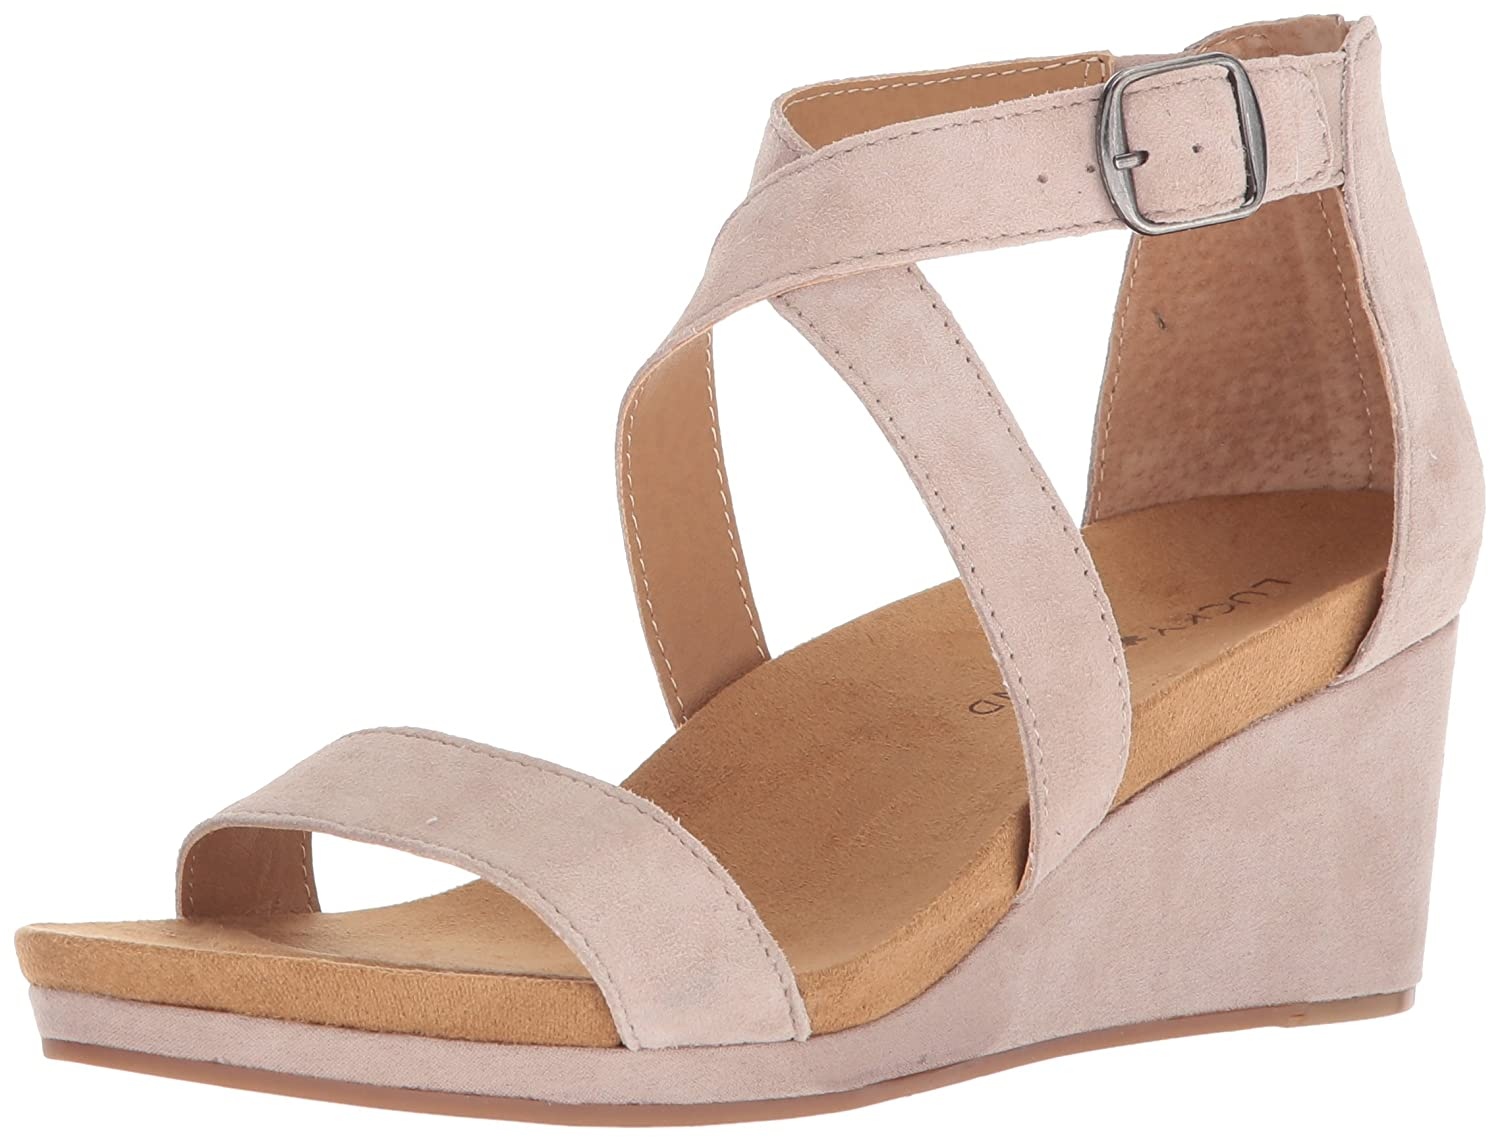 Tipsy Taupe Lucky Brand Womens Kenadee Wedges